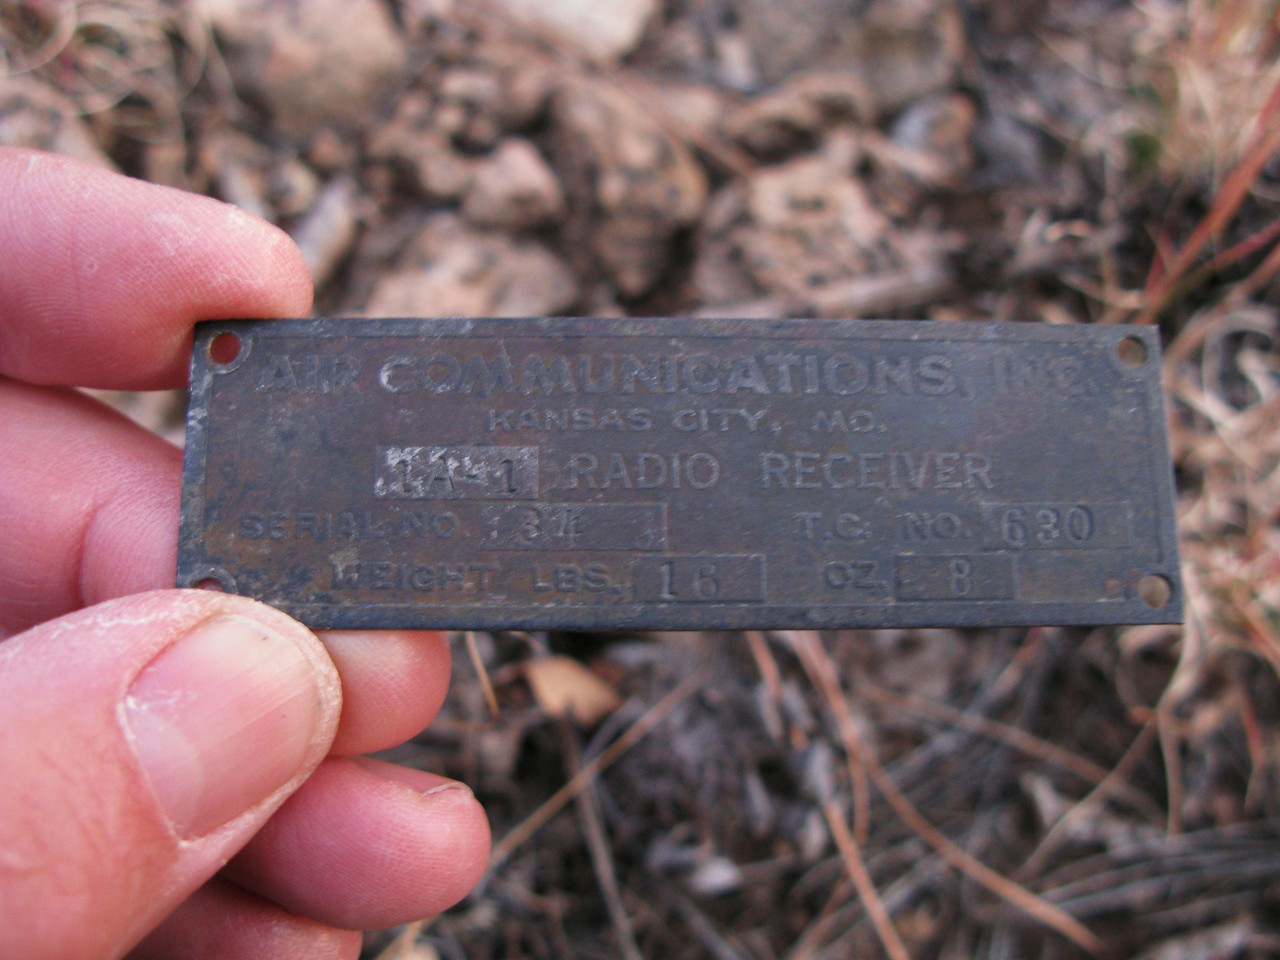 This equipment placard was from the aircraft's radio receiver. (Lostflights Photo)